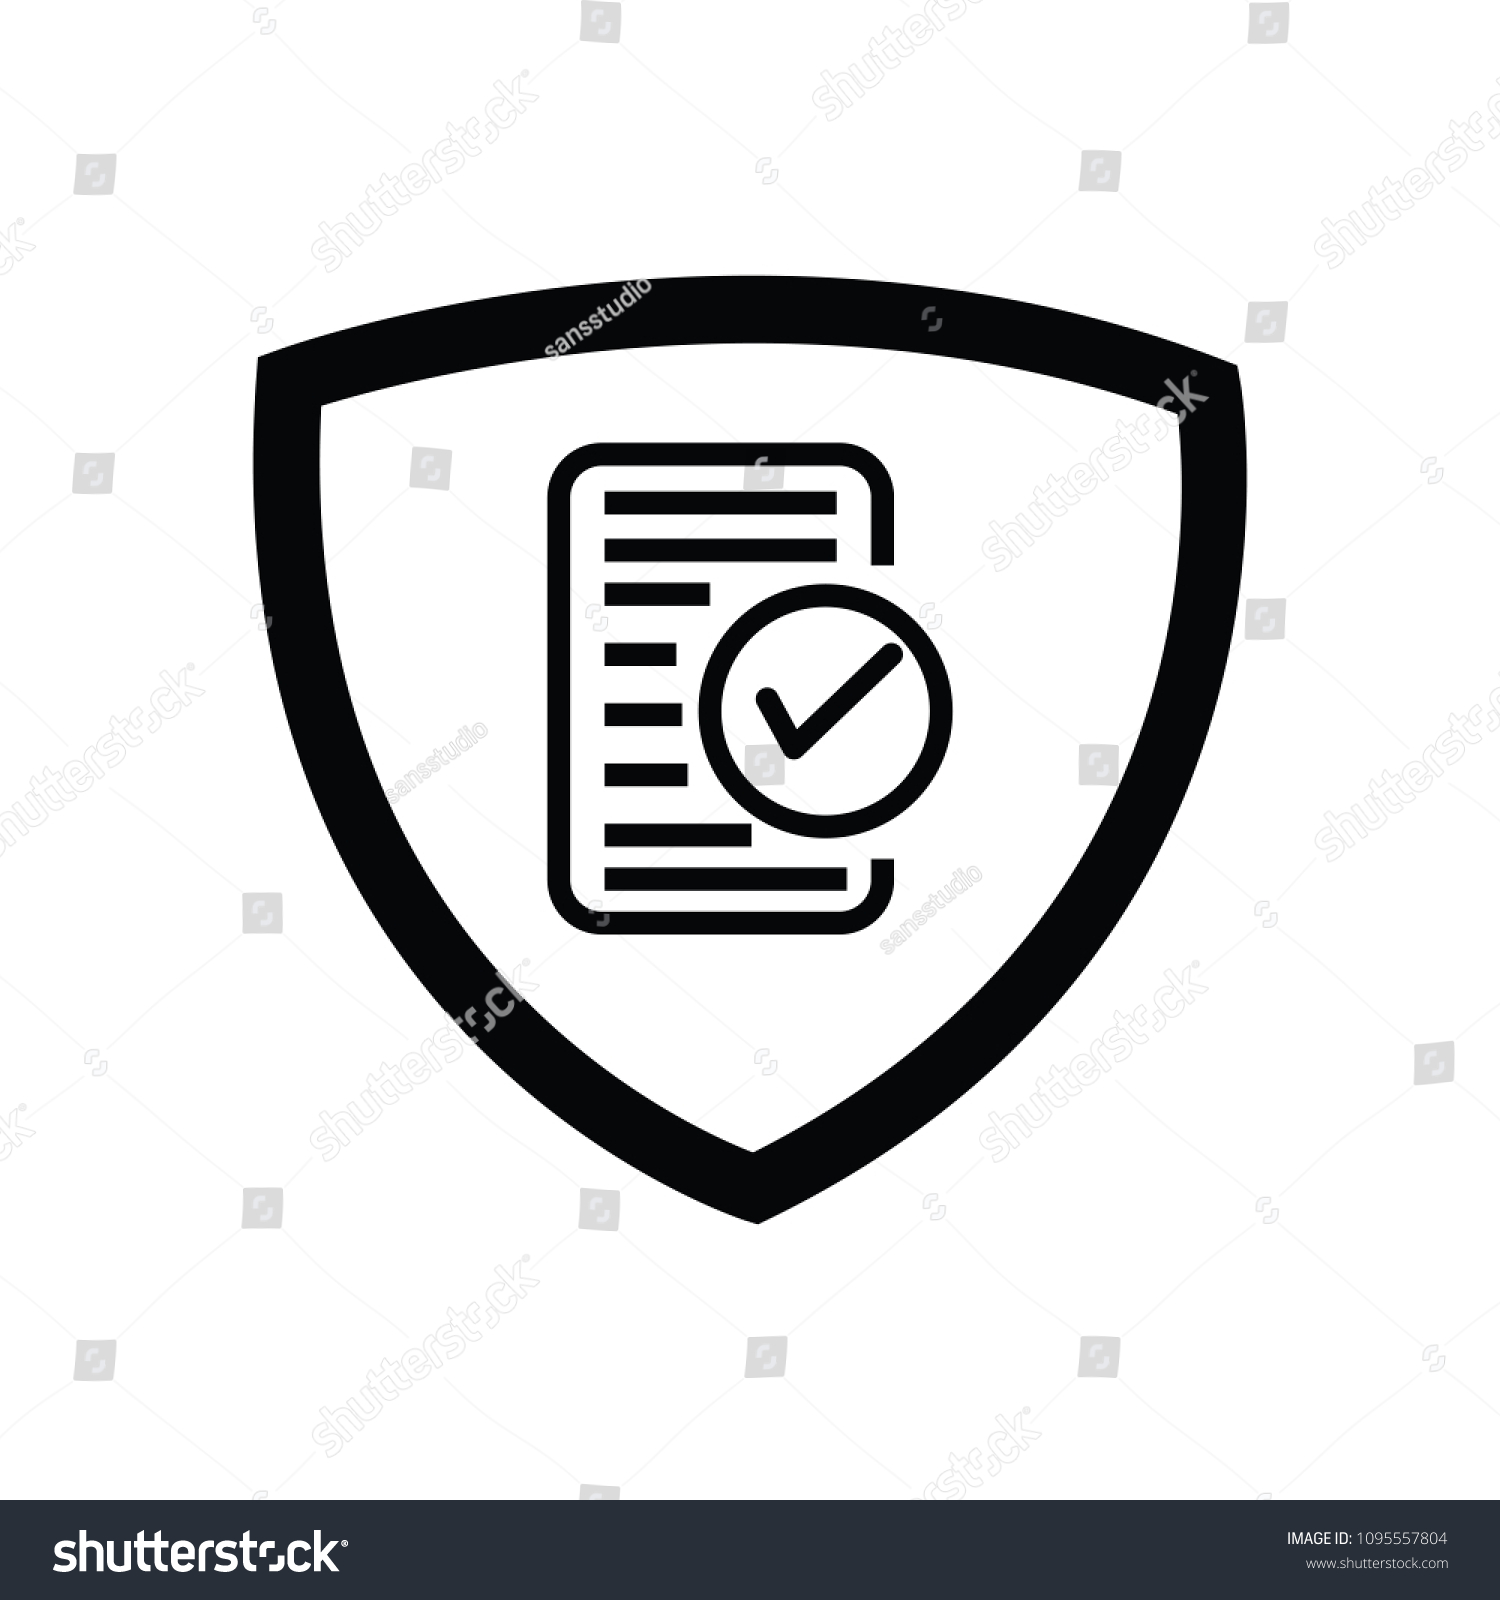 Icon Tick Data Stock Vector (Royalty Free) 1095557804